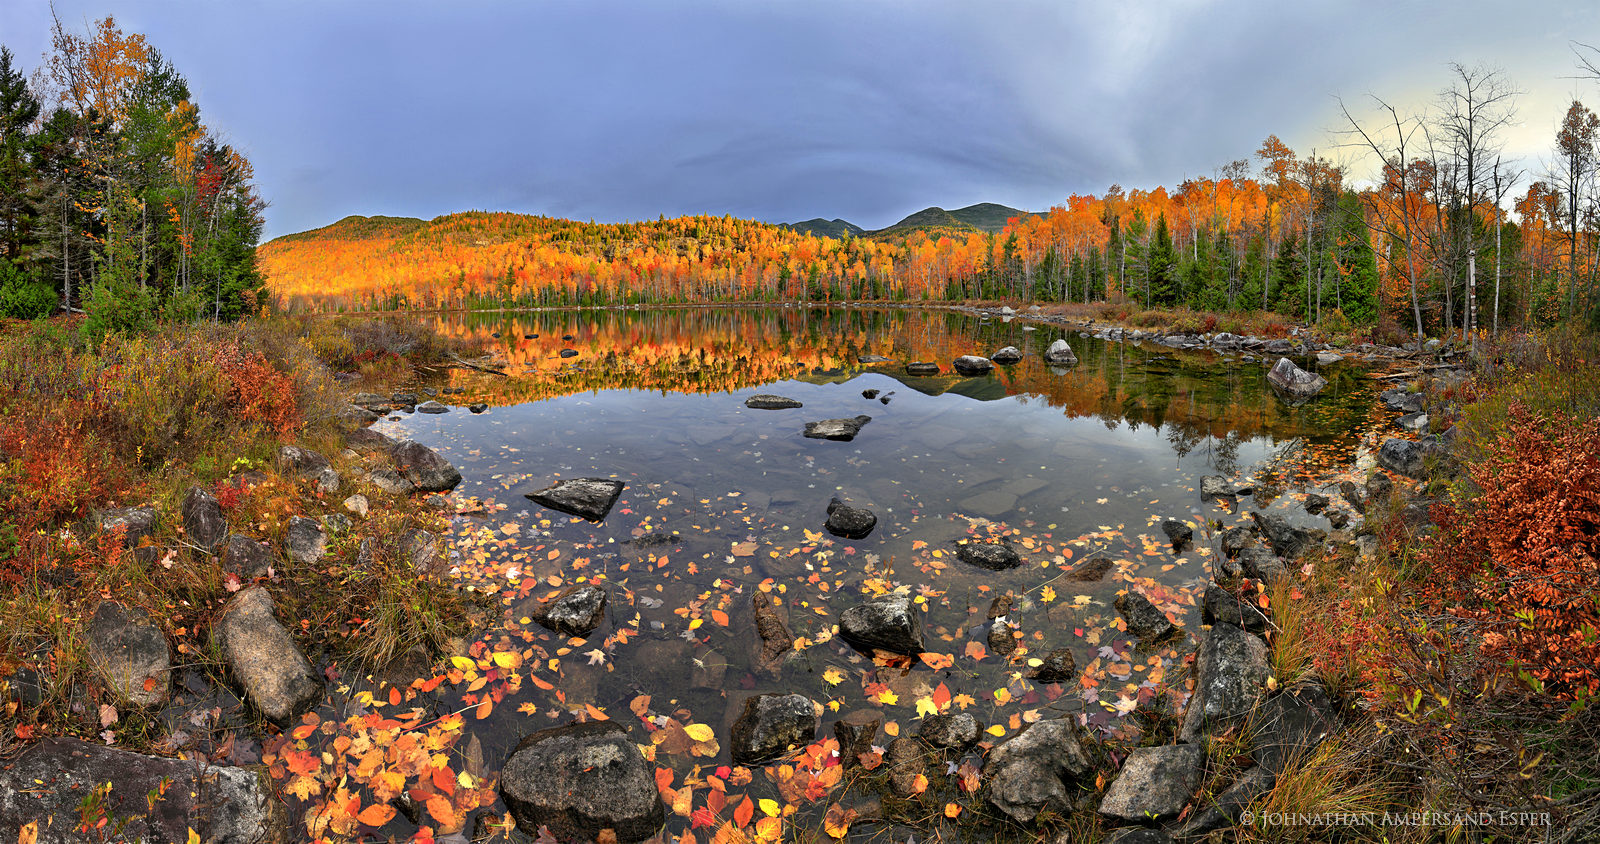 Round Pond,autumn,sunrise,light,Giant Mt,shoreline,reflection,trees,Dix Wilderness,panorama